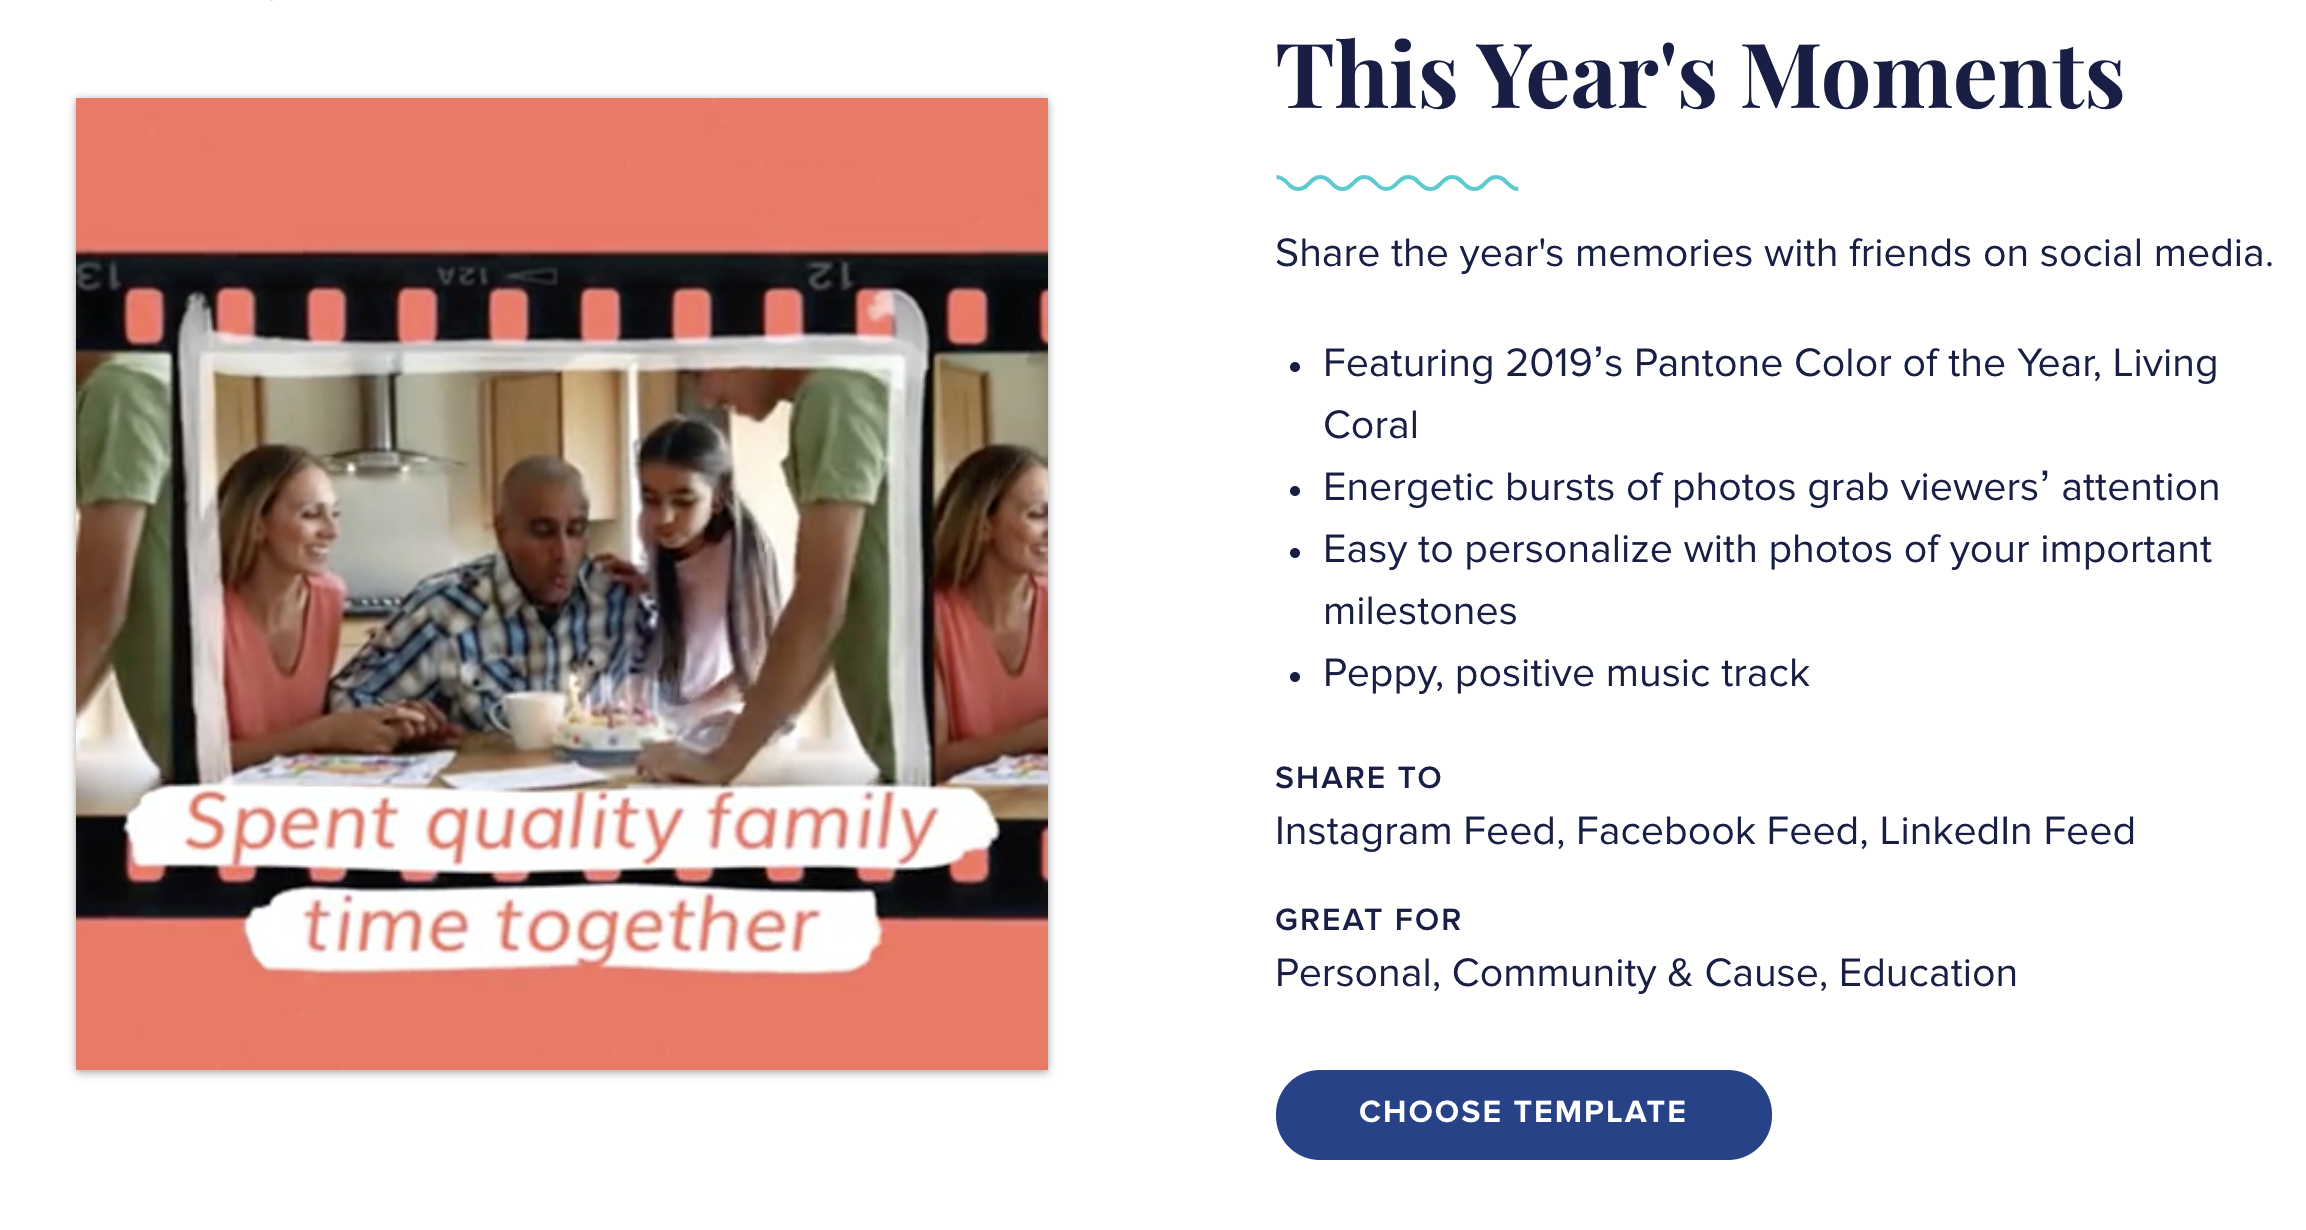 This Year's Moments Video Animoto Template